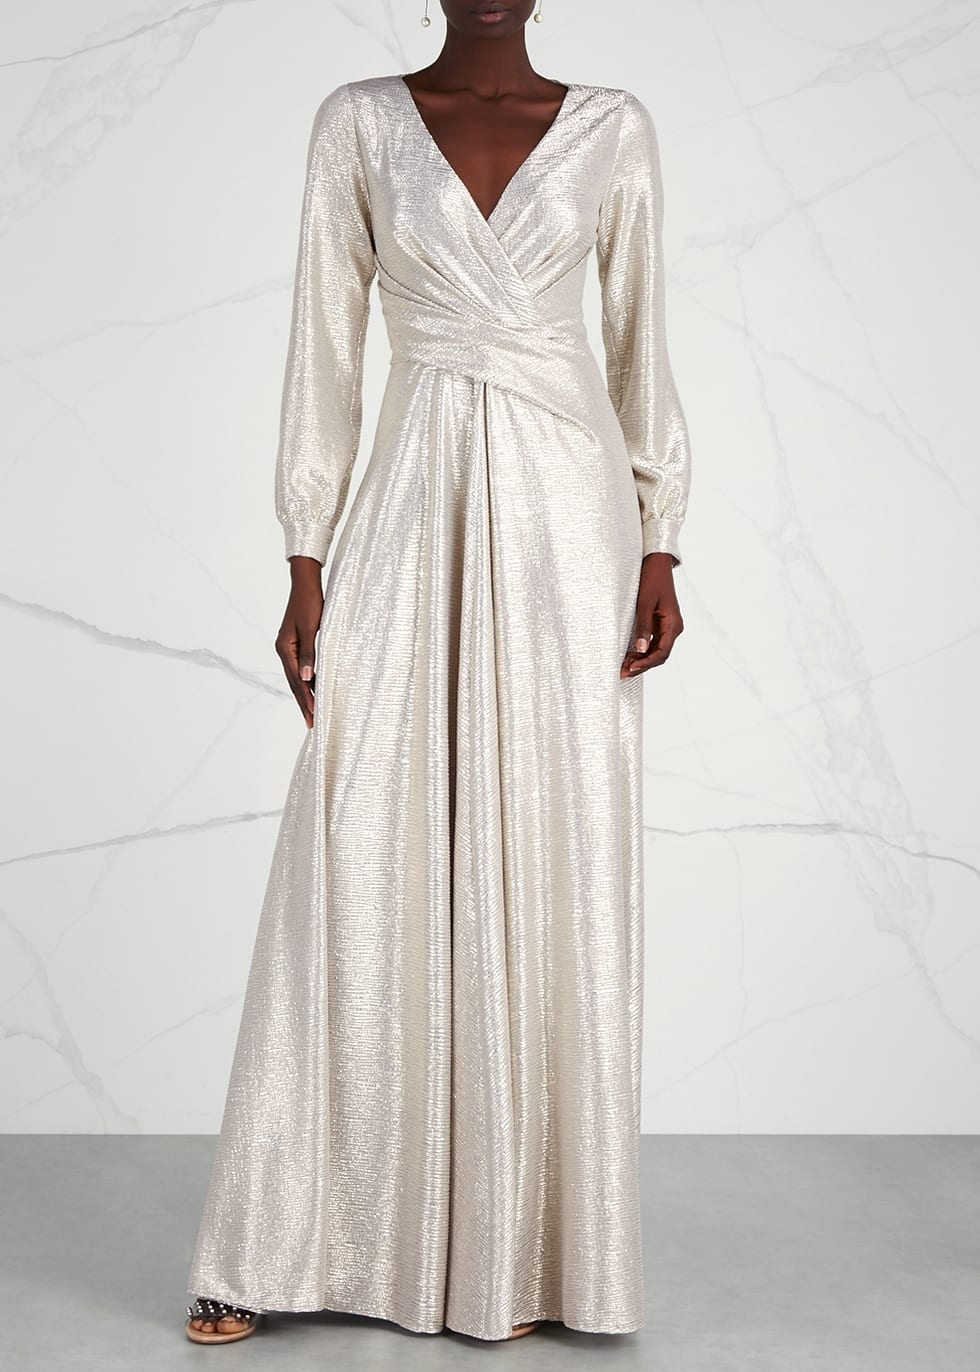 TALBOT RUNHOF Pale Gold Draped Gold Gown - We Select Dresses